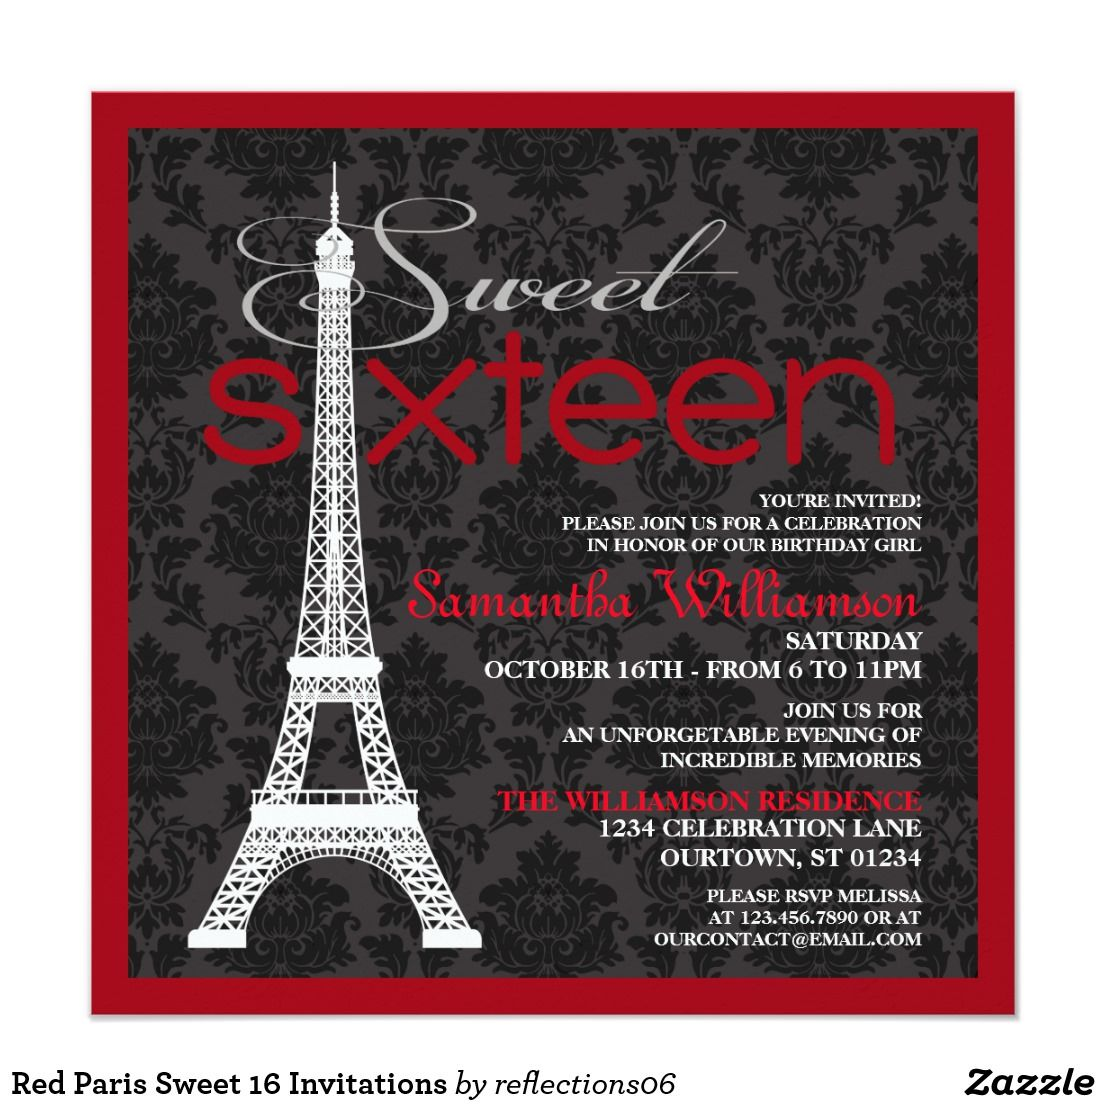 Red Paris Sweet 16 Invitations | { Happy Birthday - Invitations and ...